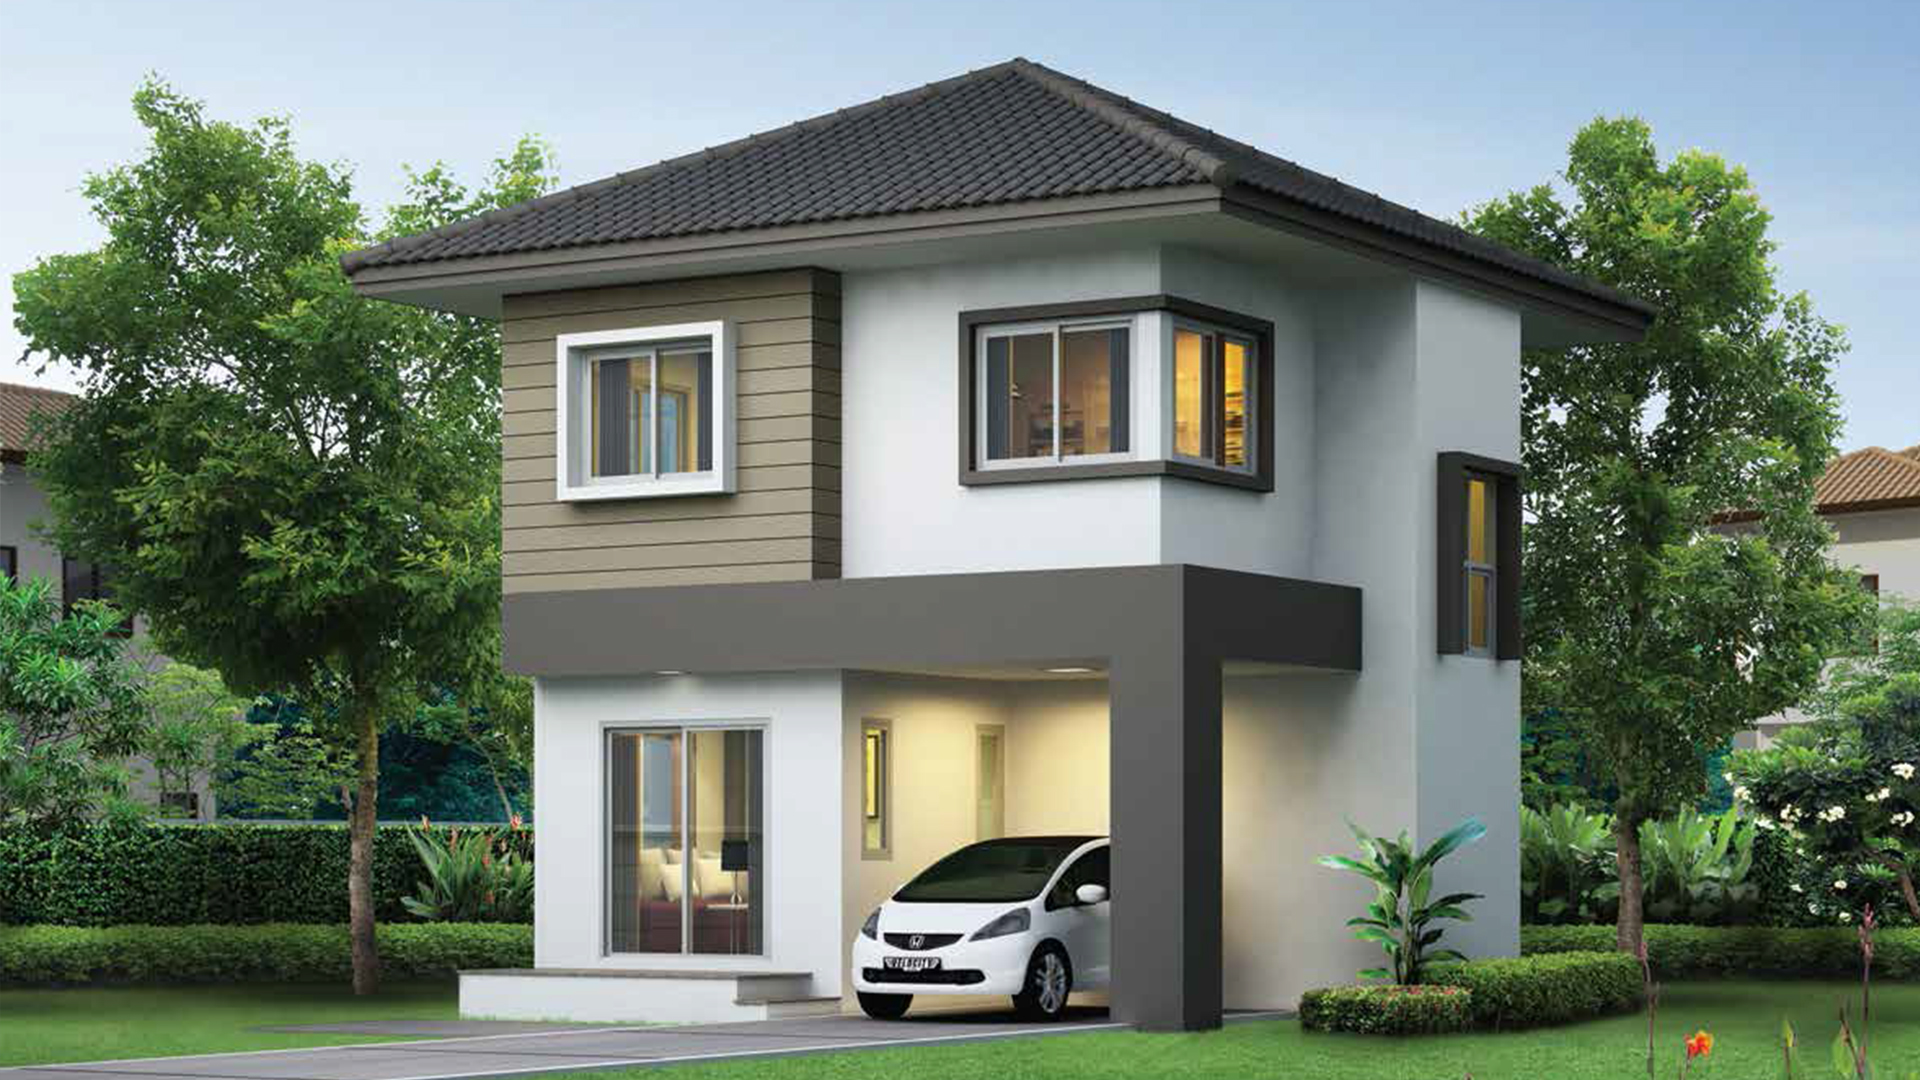 Small House Plan 6x6.25m with 3 bedrooms - House Plans 3D